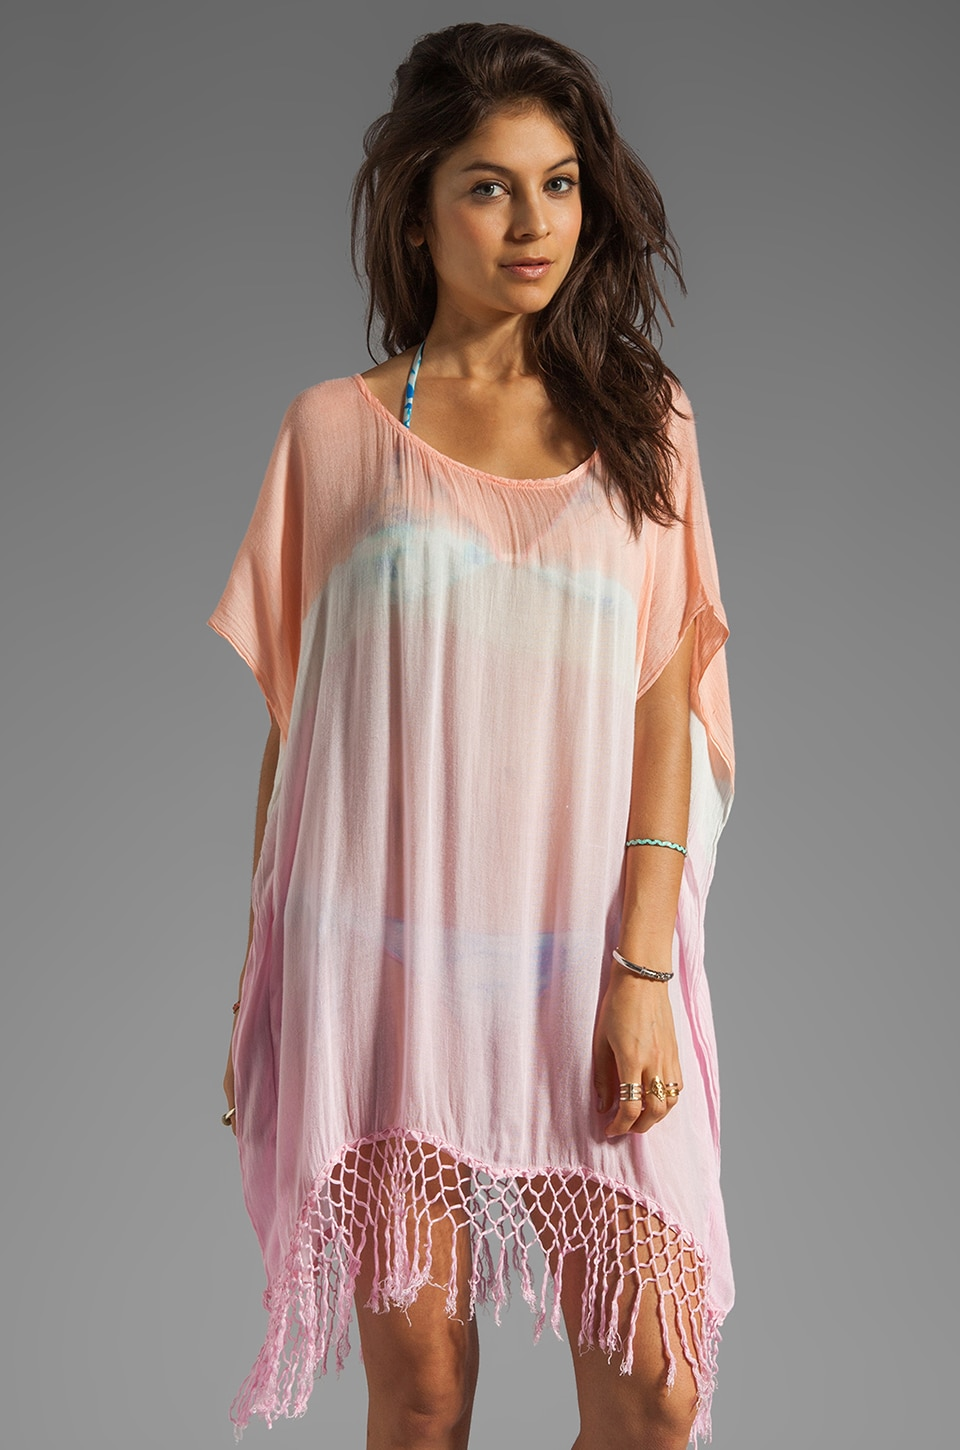 Gypsy 05 Swimsuit Cover Up in Sunrise